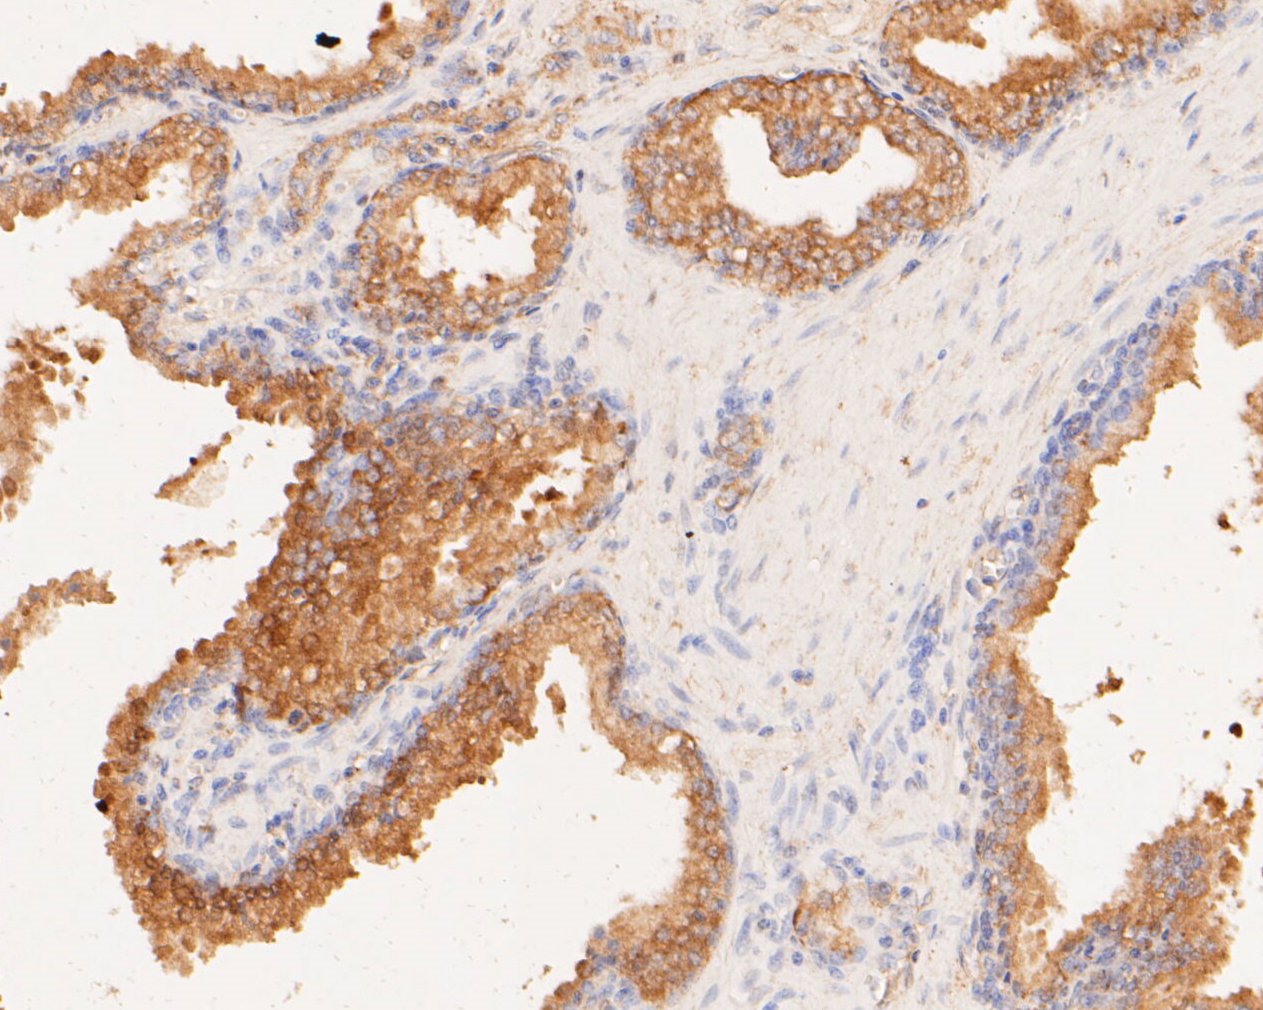 Immunohistochemical analysis of paraffin-embedded human prostate carcinoma tissue using anti-TMEM163 antibody. The section was pre-treated using heat mediated antigen retrieval with Tris-EDTA buffer (pH 8.0-8.4) for 20 minutes.The tissues were blocked in 5% BSA for 30 minutes at room temperature, washed with ddH2O and PBS, and then probed with the primary antibody (ER1901-91, 1/50) for 30 minutes at room temperature. The detection was performed using an HRP conjugated compact polymer system. DAB was used as the chromogen. Tissues were counterstained with hematoxylin and mounted with DPX.